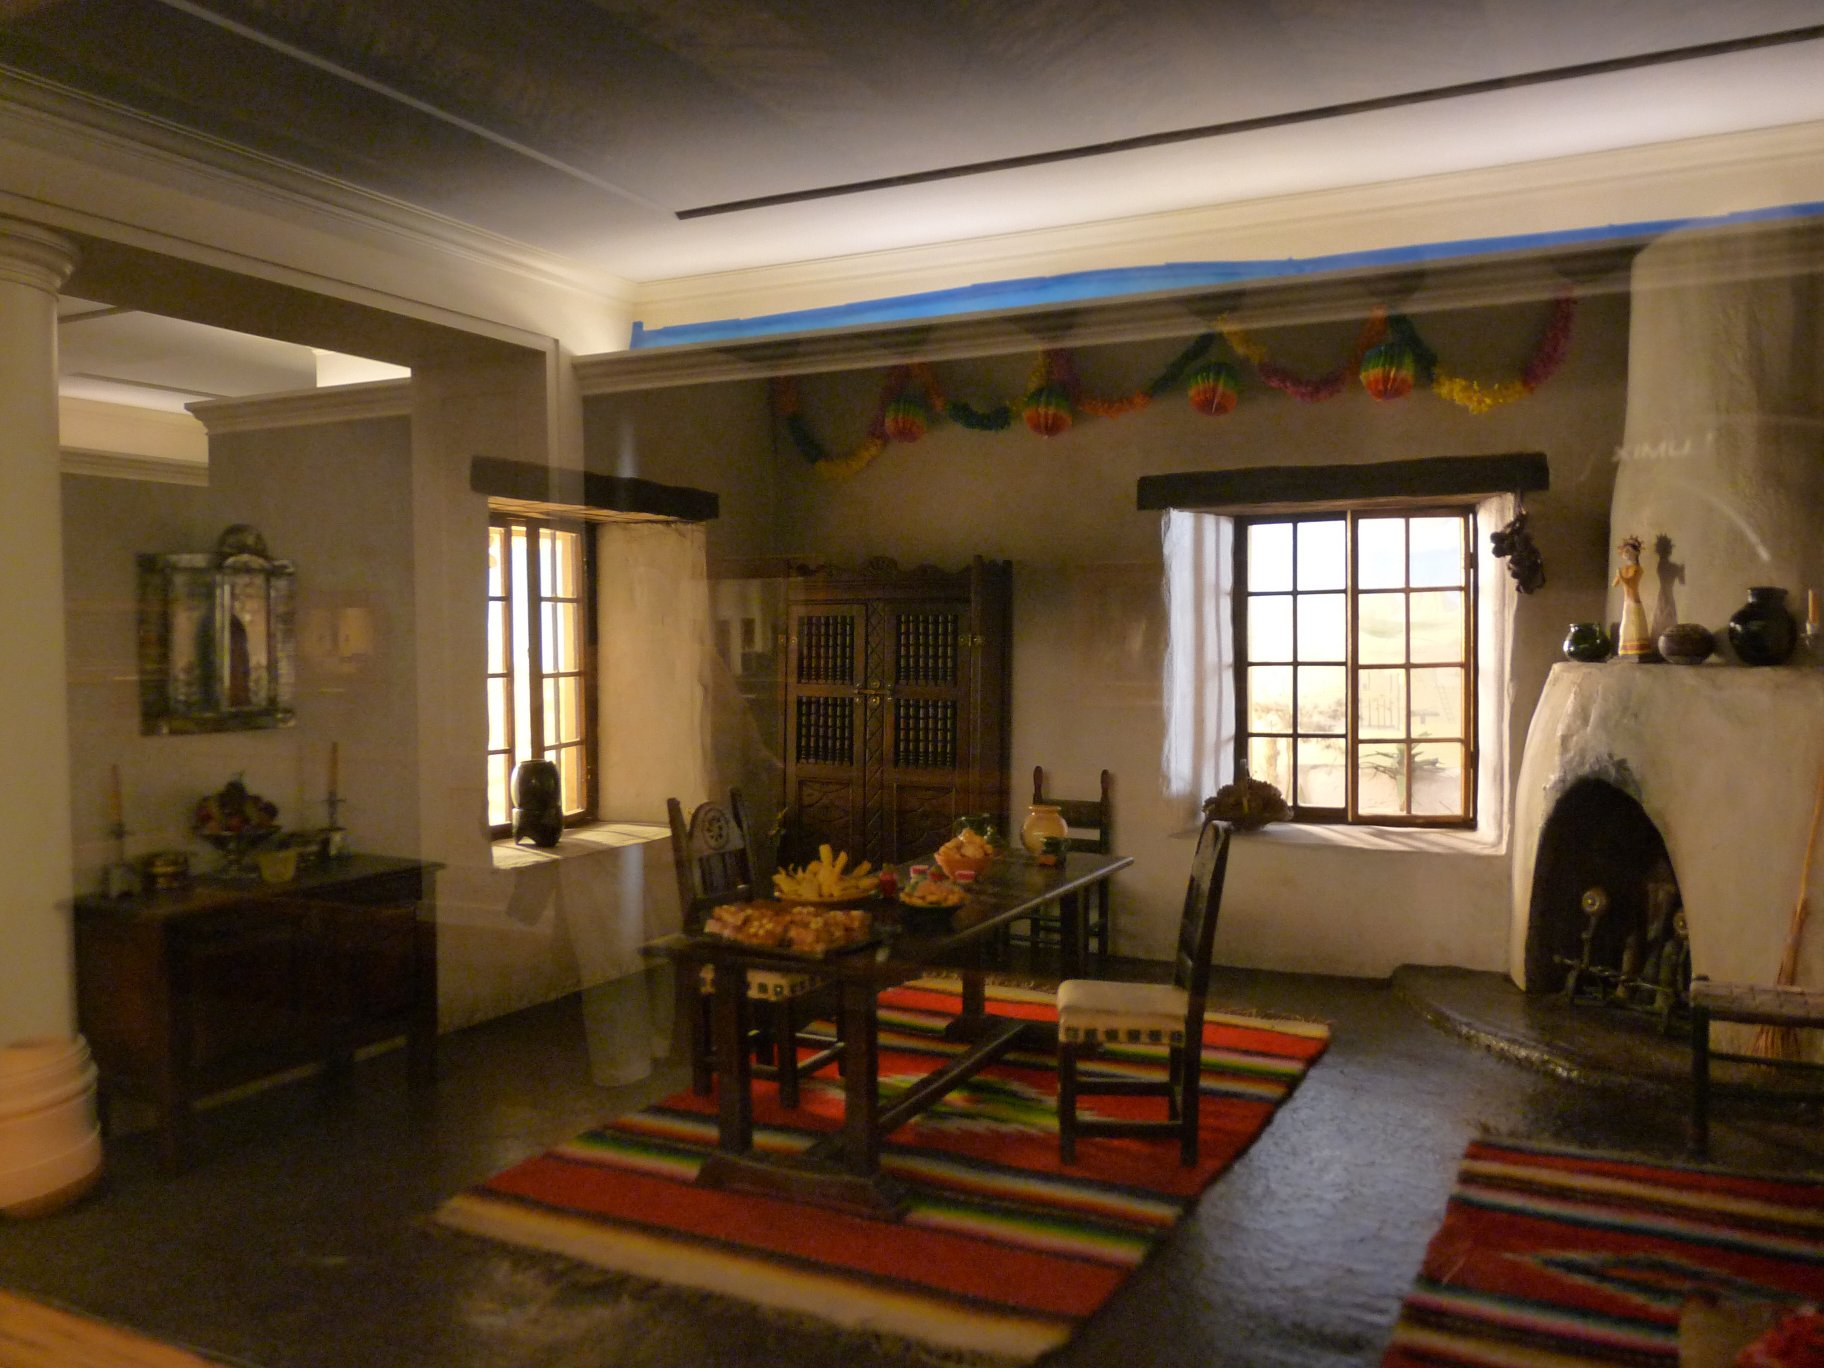 southwestern room with decorations